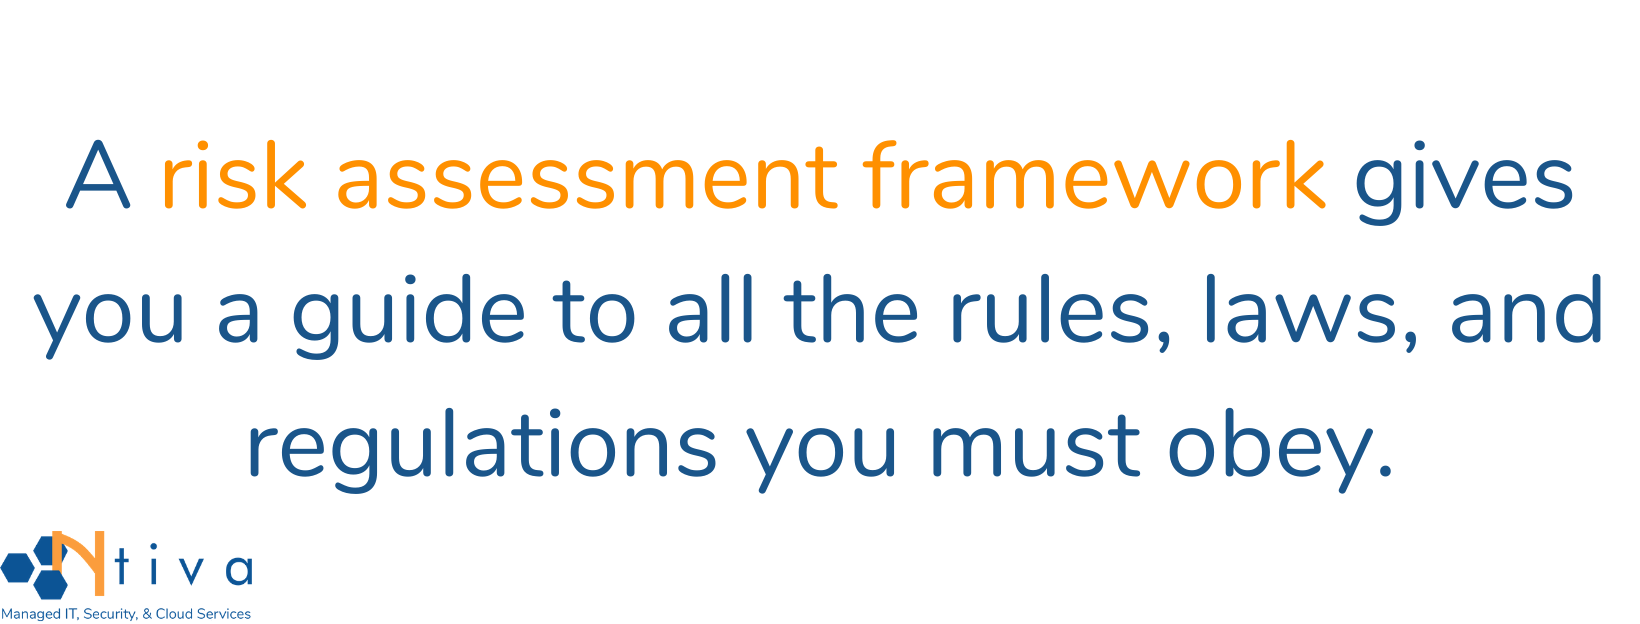 risk assessment framework Quote